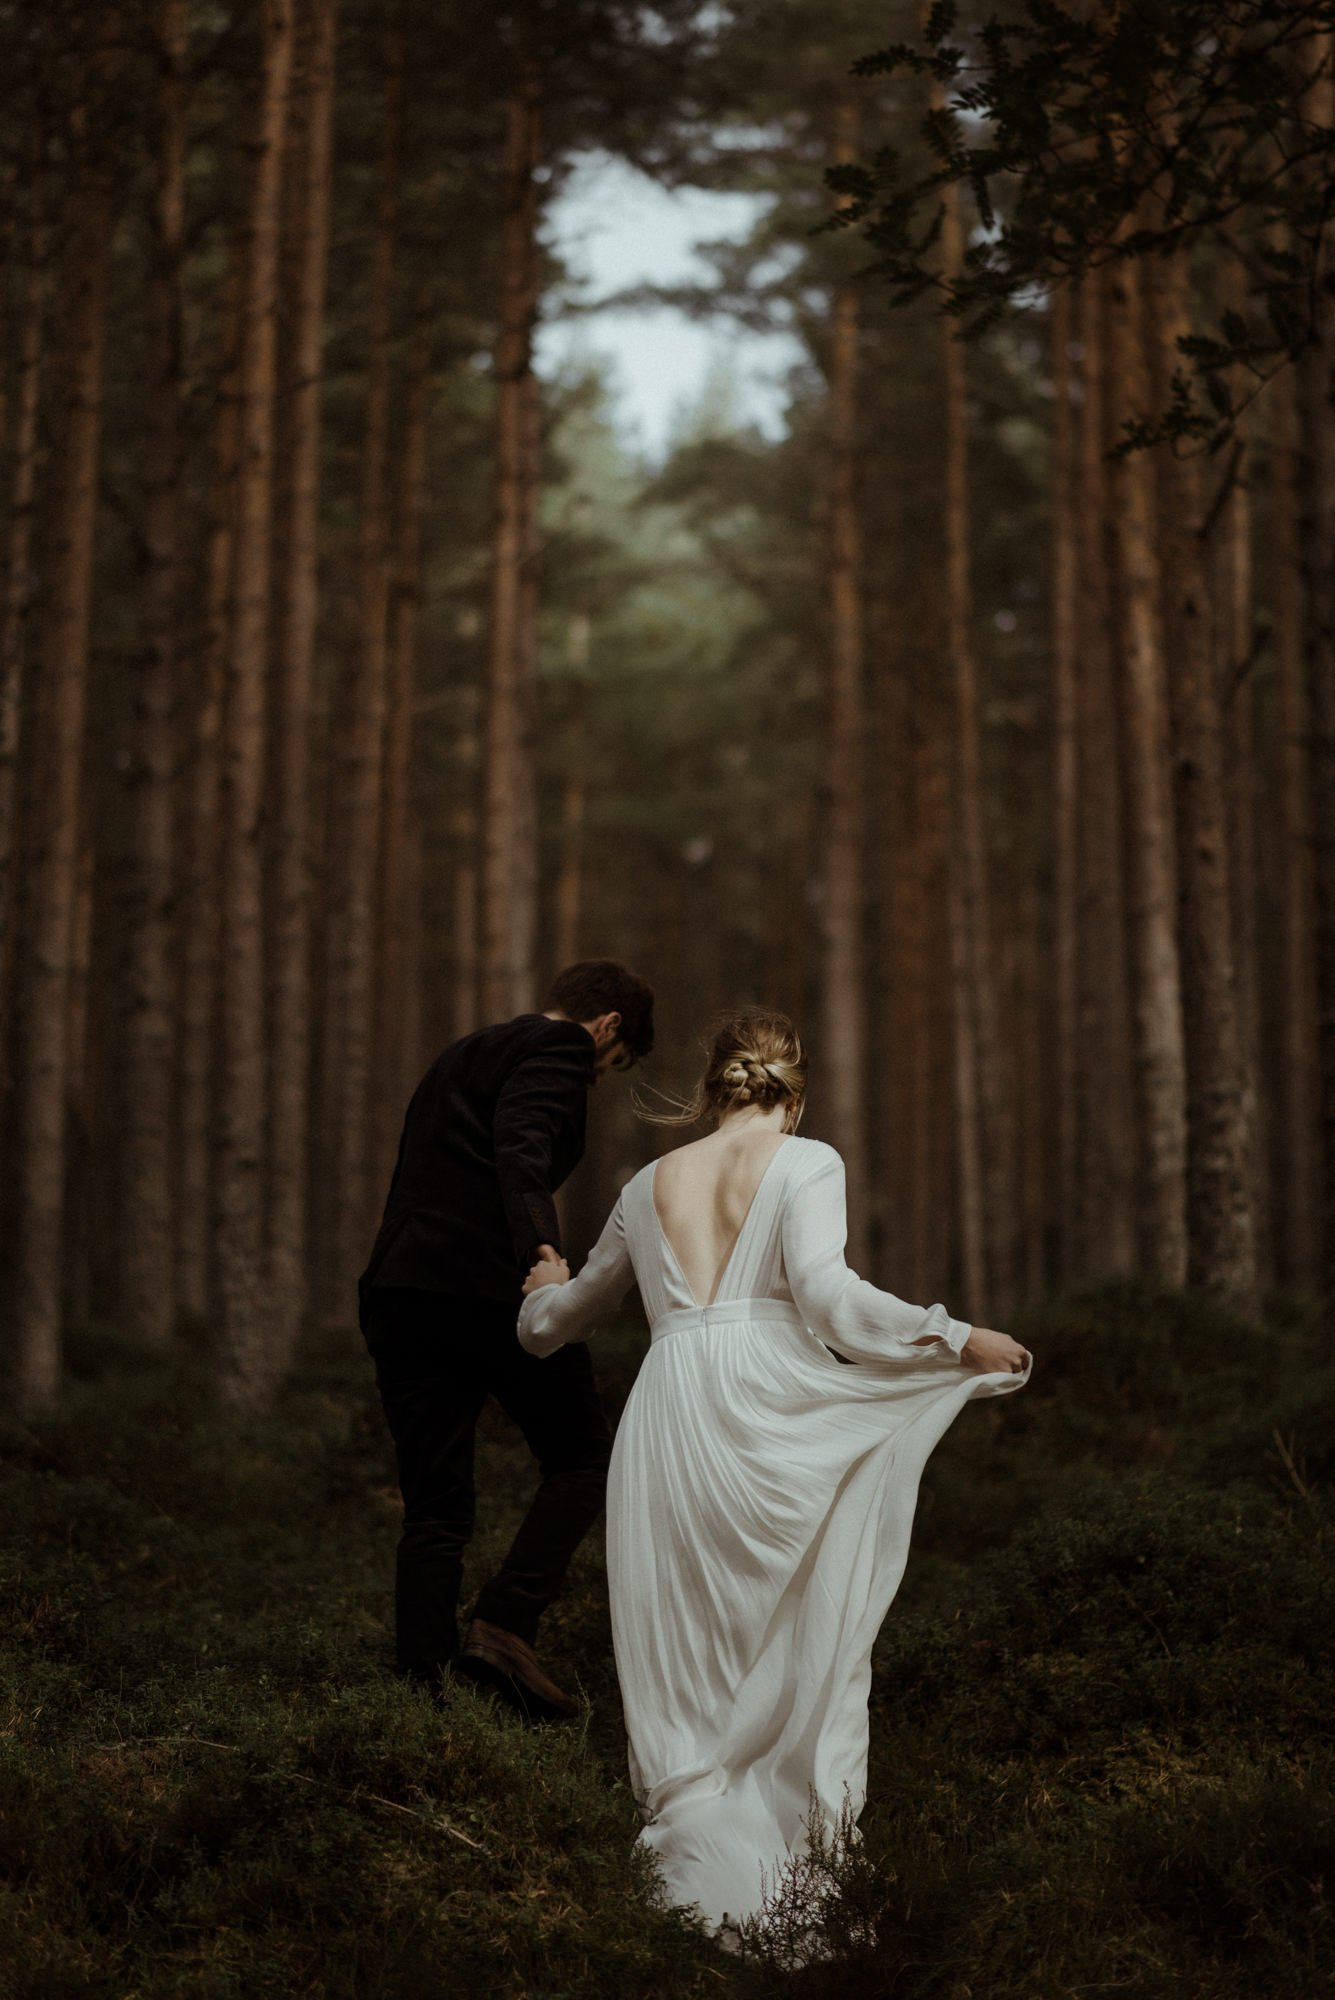 Cinematic Wedding Photography Tips